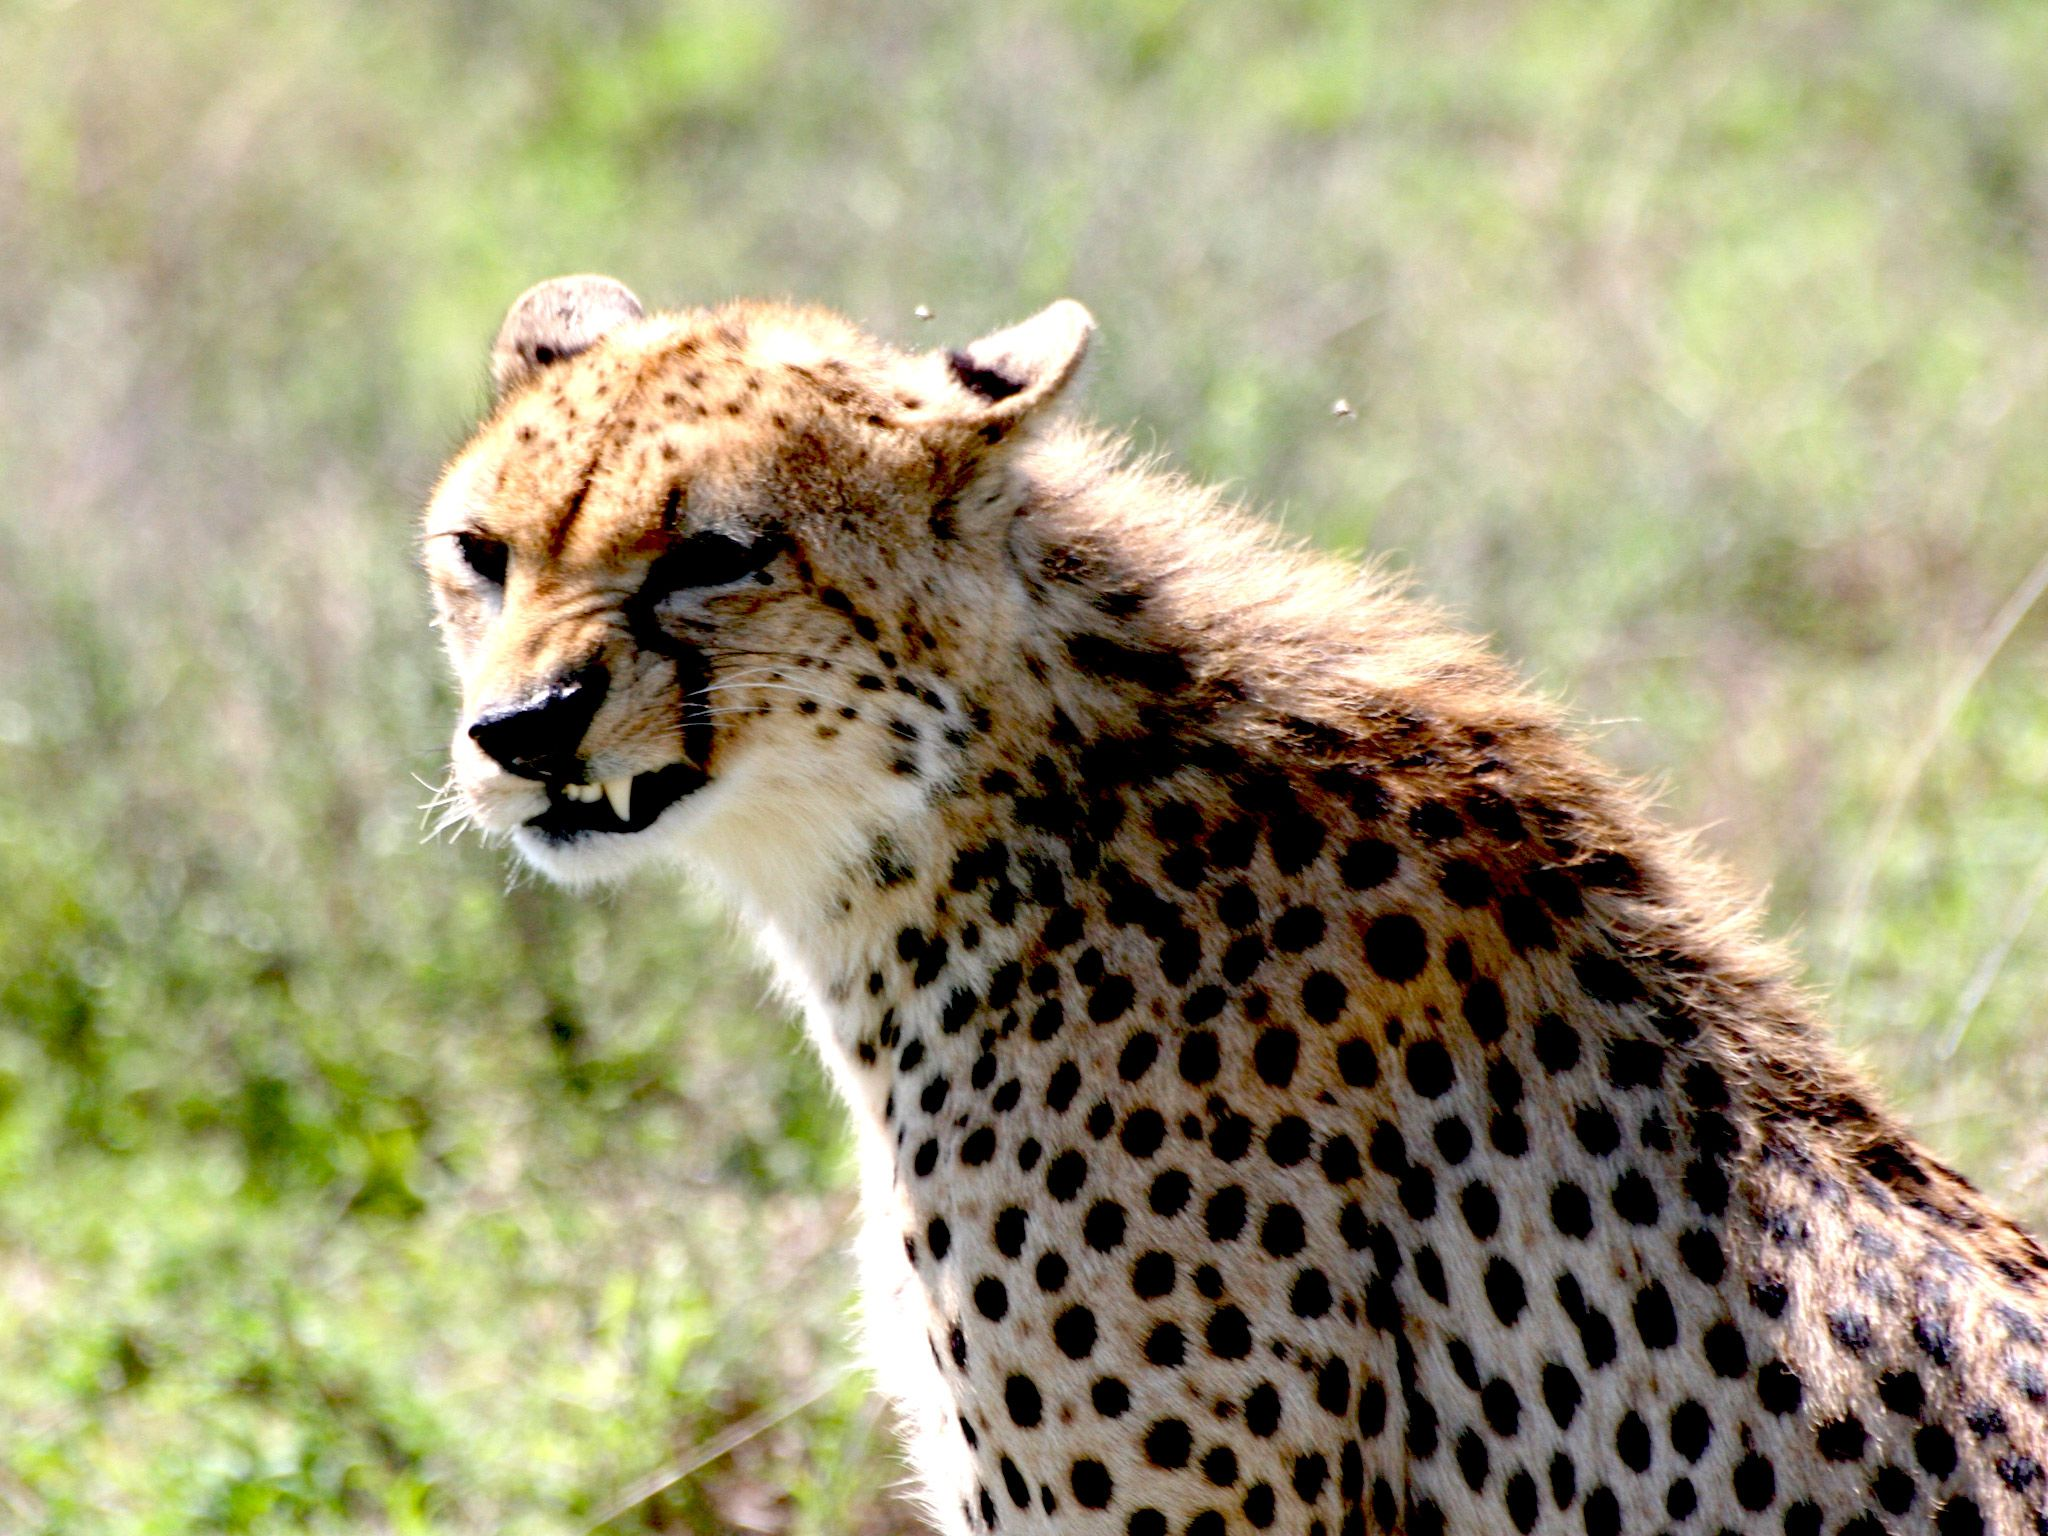 Cheetah shows off it's sharp teeth. This image is from Surviving the Serengeti. [Photo of the day - July 2015]